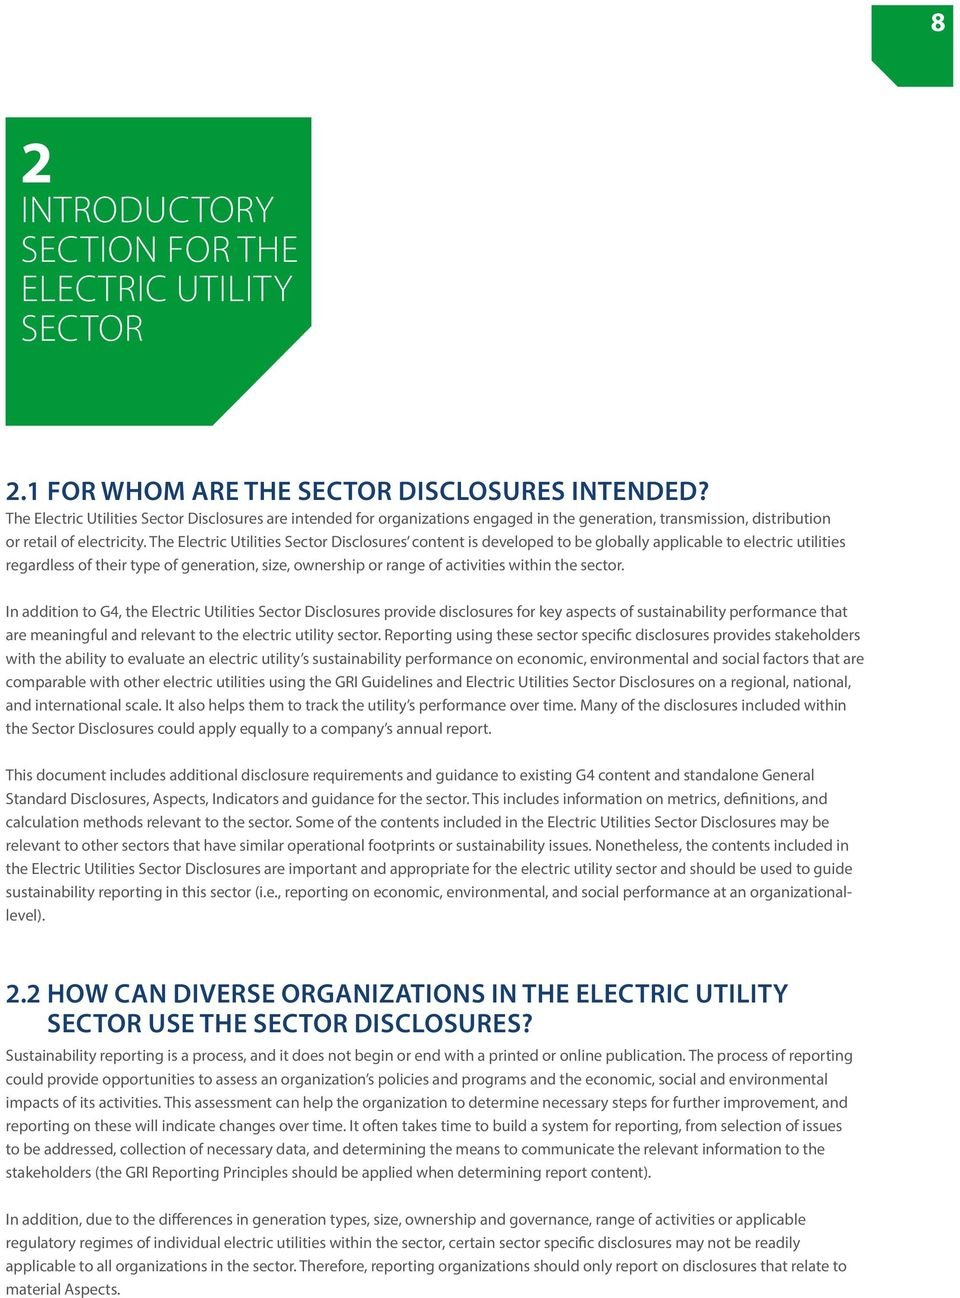 The Electric Utilities Sector Disclosures content is developed to be globally applicable to electric utilities regardless of their type of generation, size, ownership or range of activities within